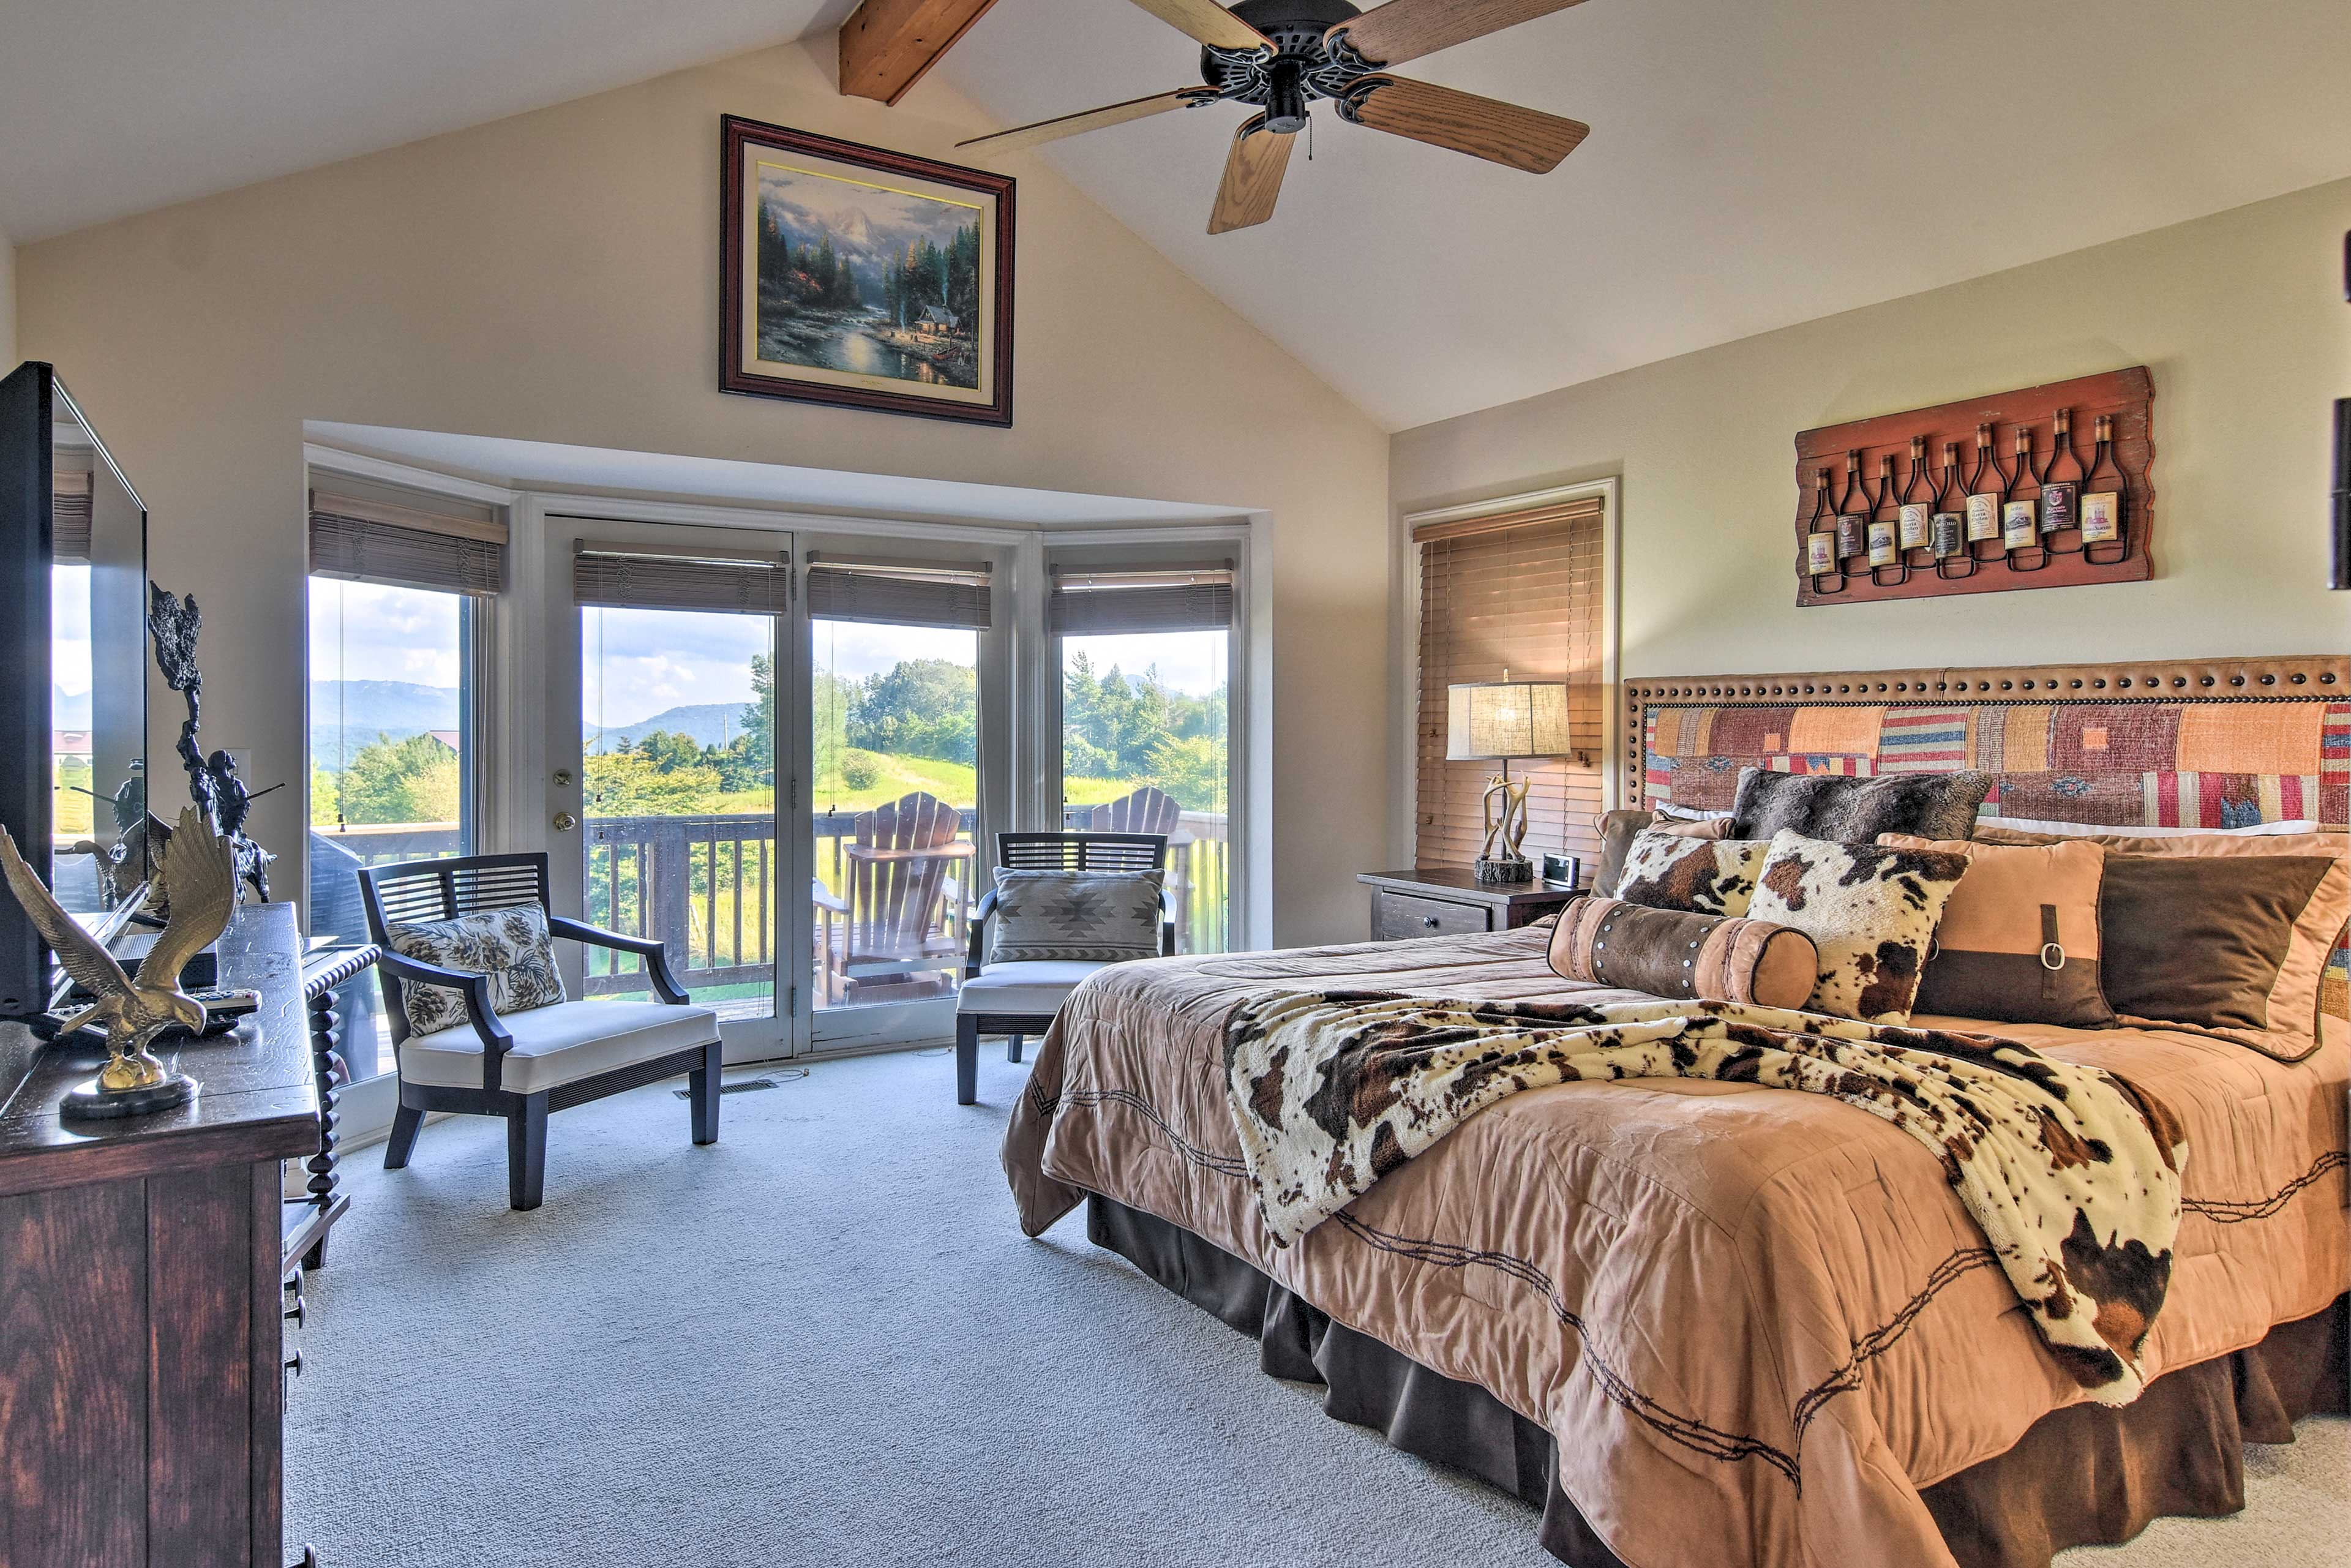 Wake up to mountain views or draw the blinds and sleep in.